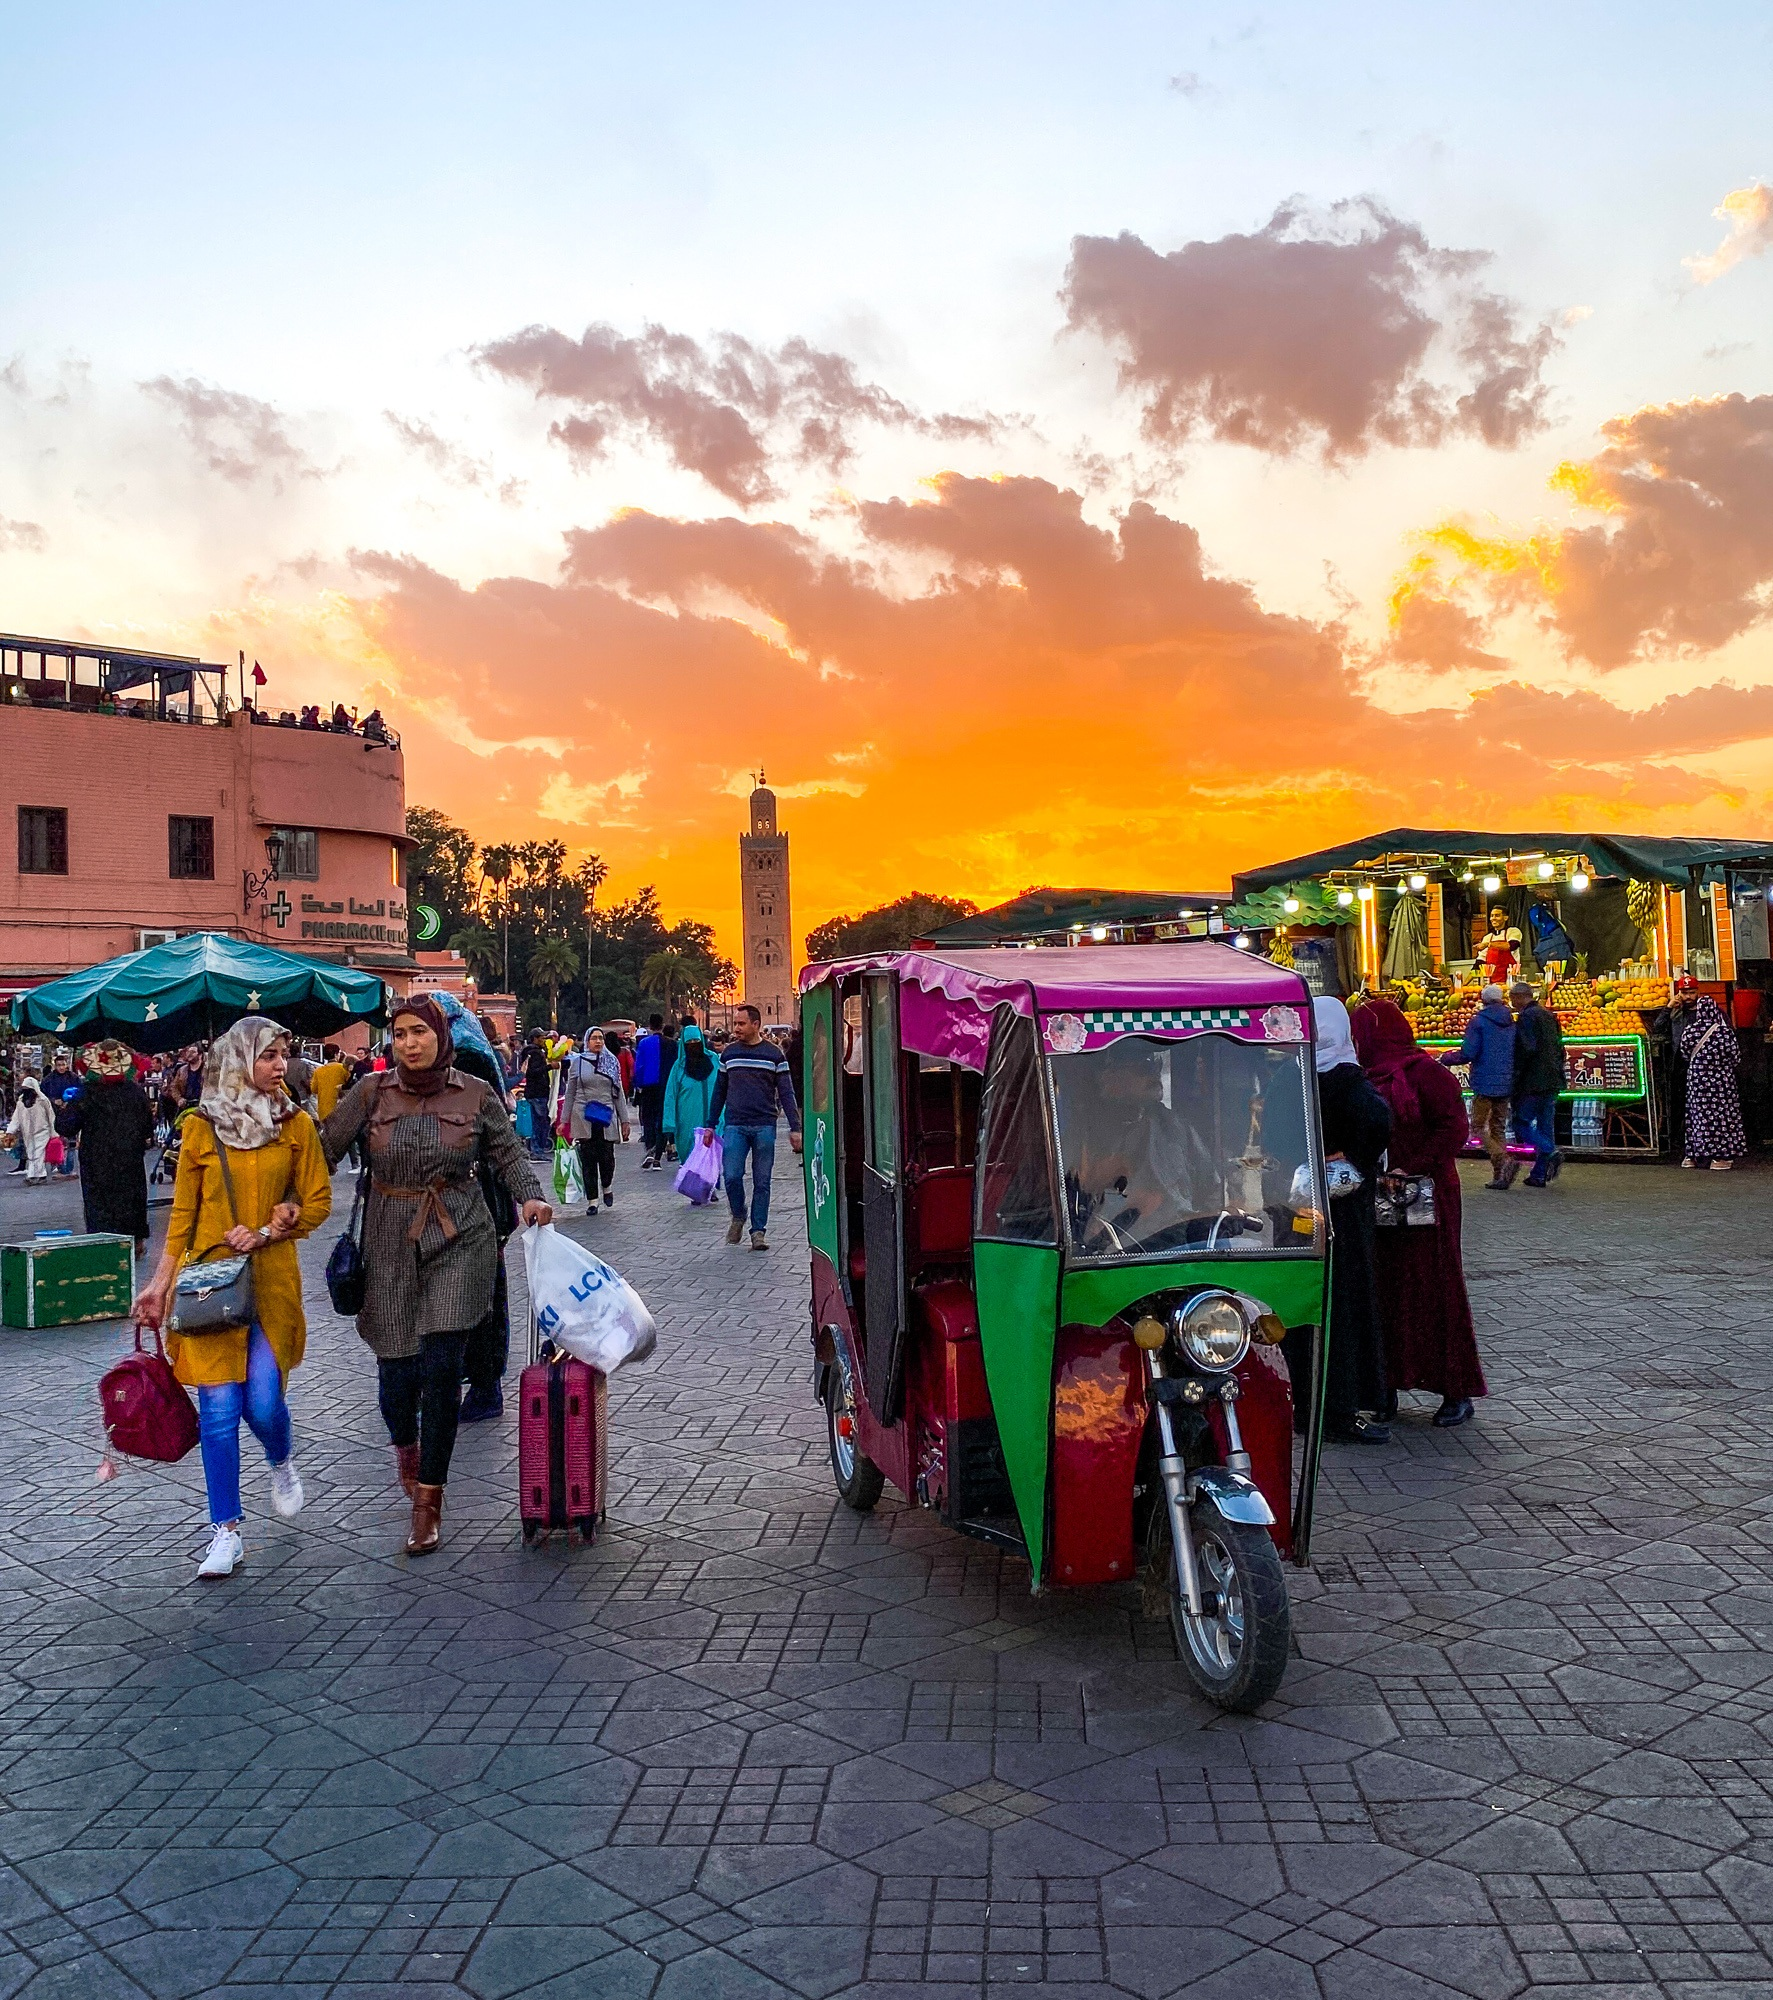 Shoppers and a tuktuk in Marrakech's medina